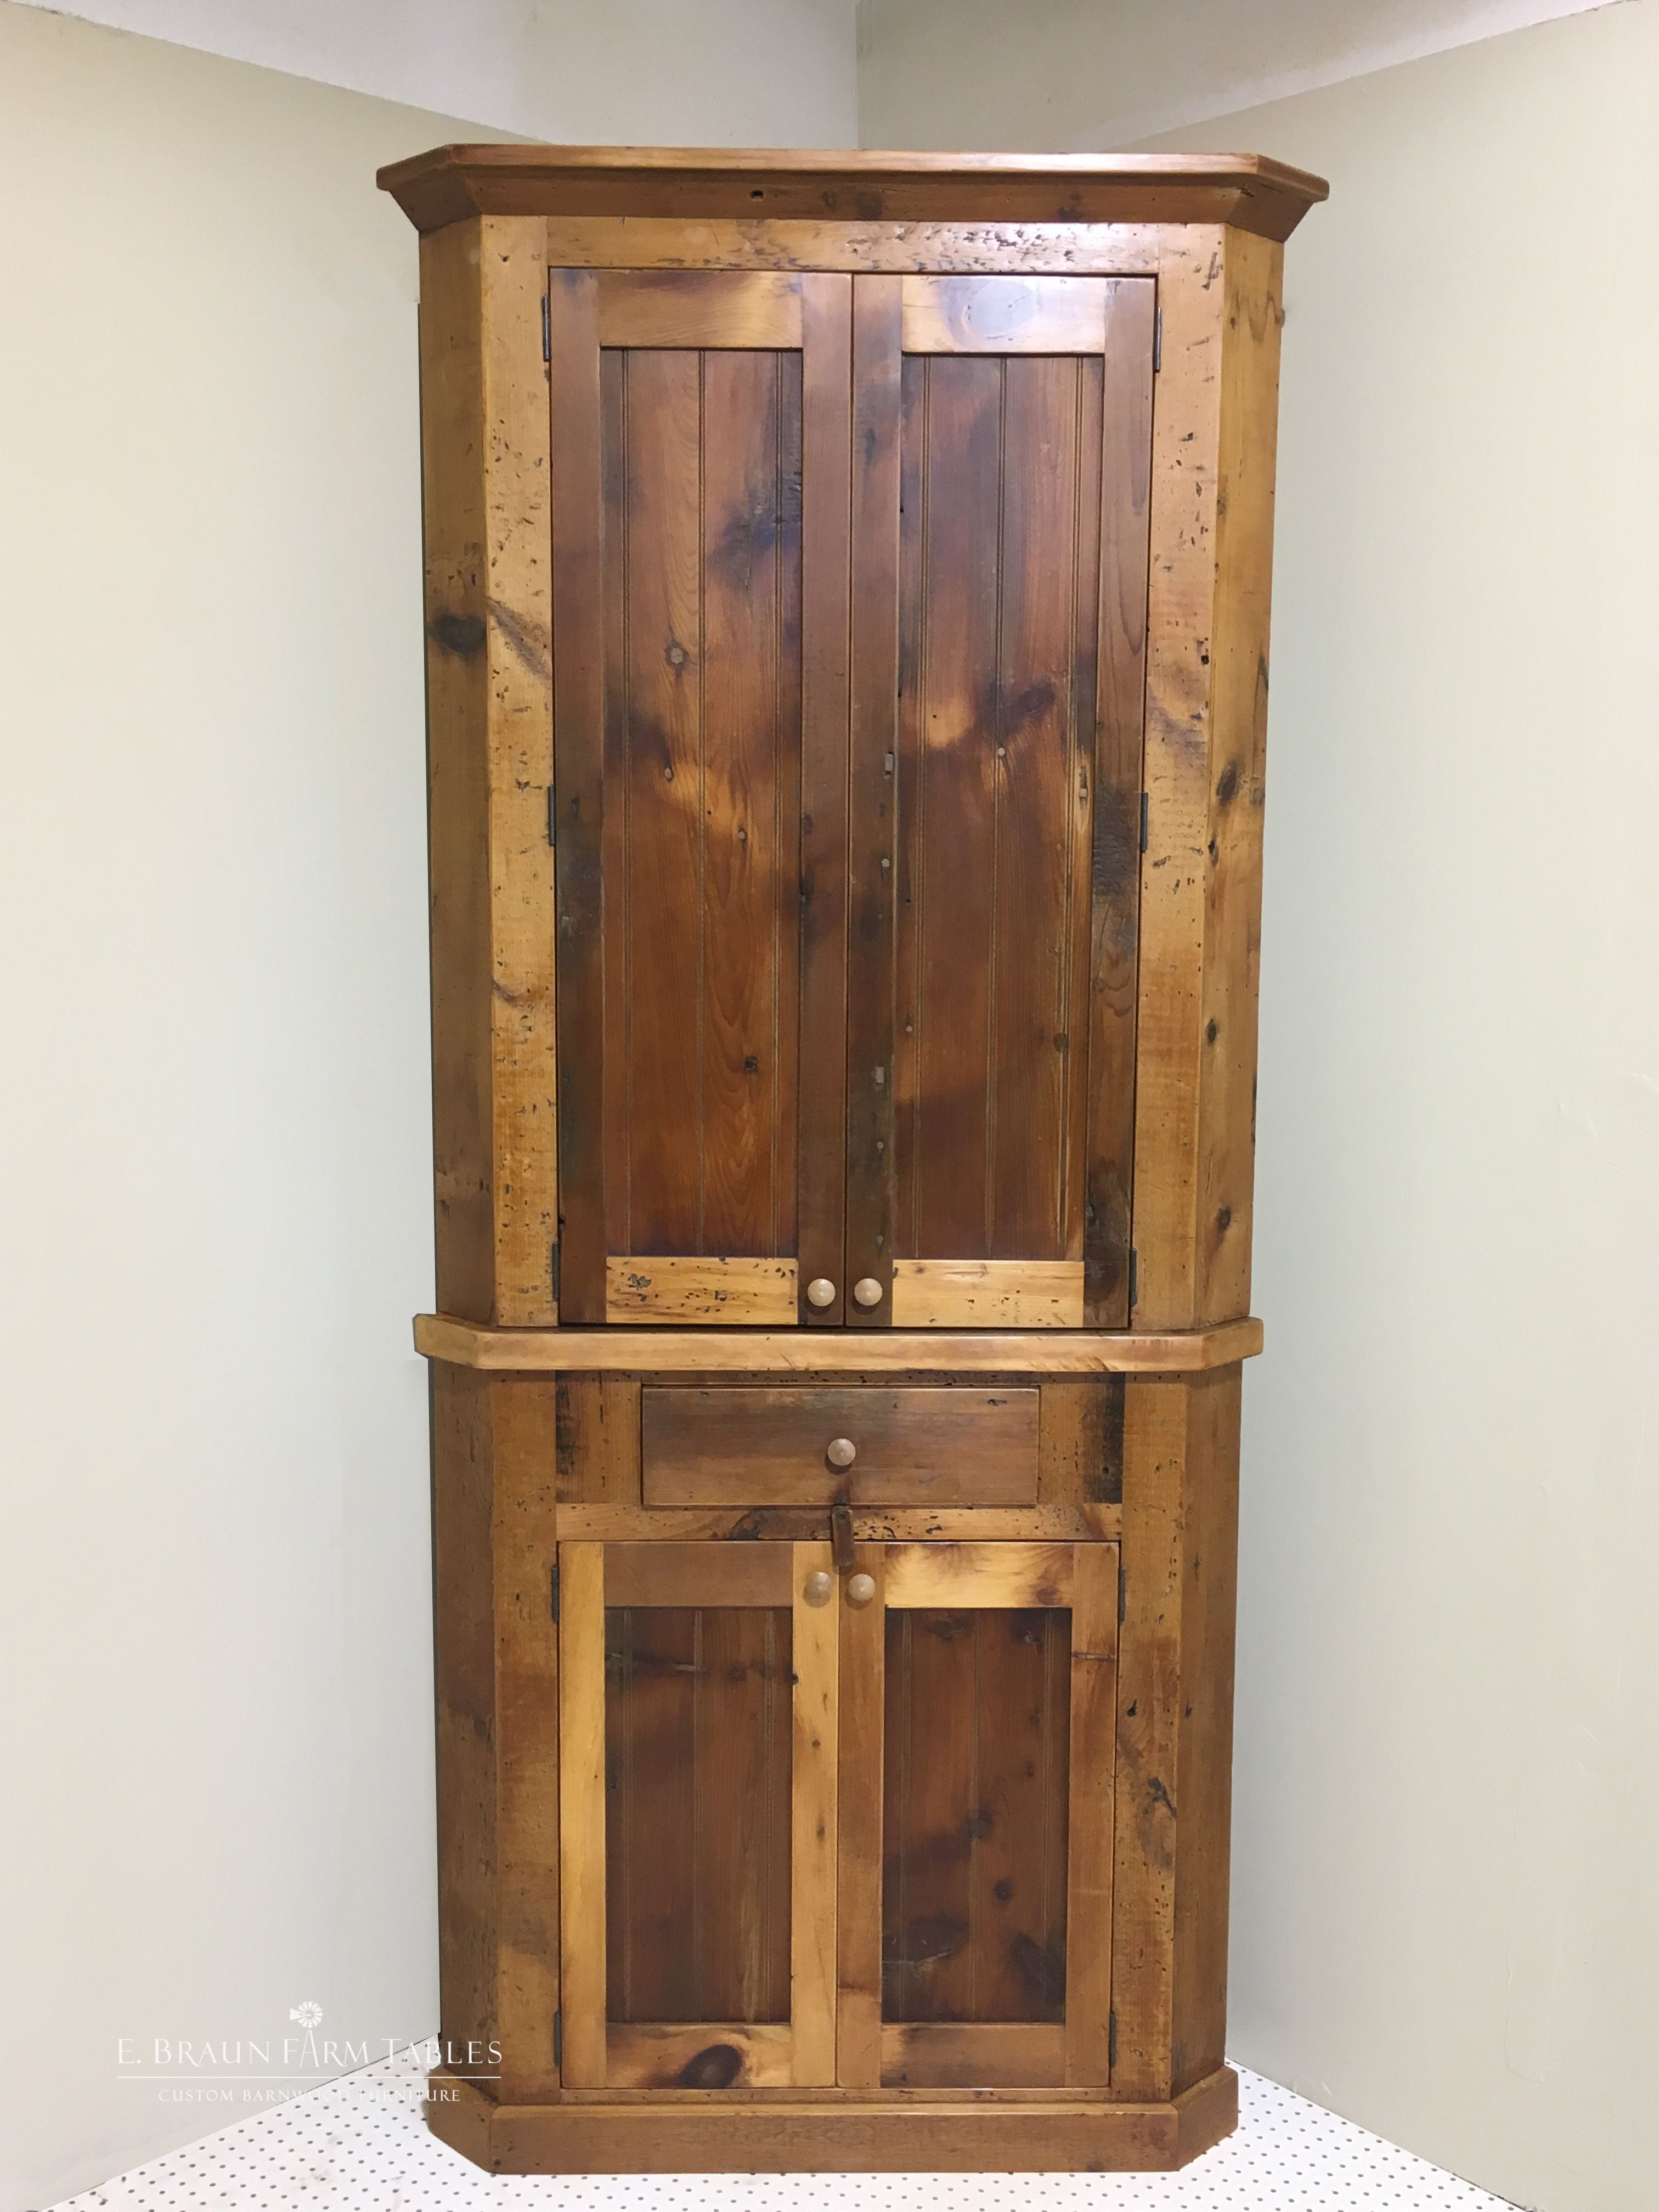 Reclaimed Pine Barn Wood Corner Cabinet Handcrafted In The Heart Of Amish Country Lancaster County P Wood Storage Cabinets Wood Cabinets Cabinet Furniture